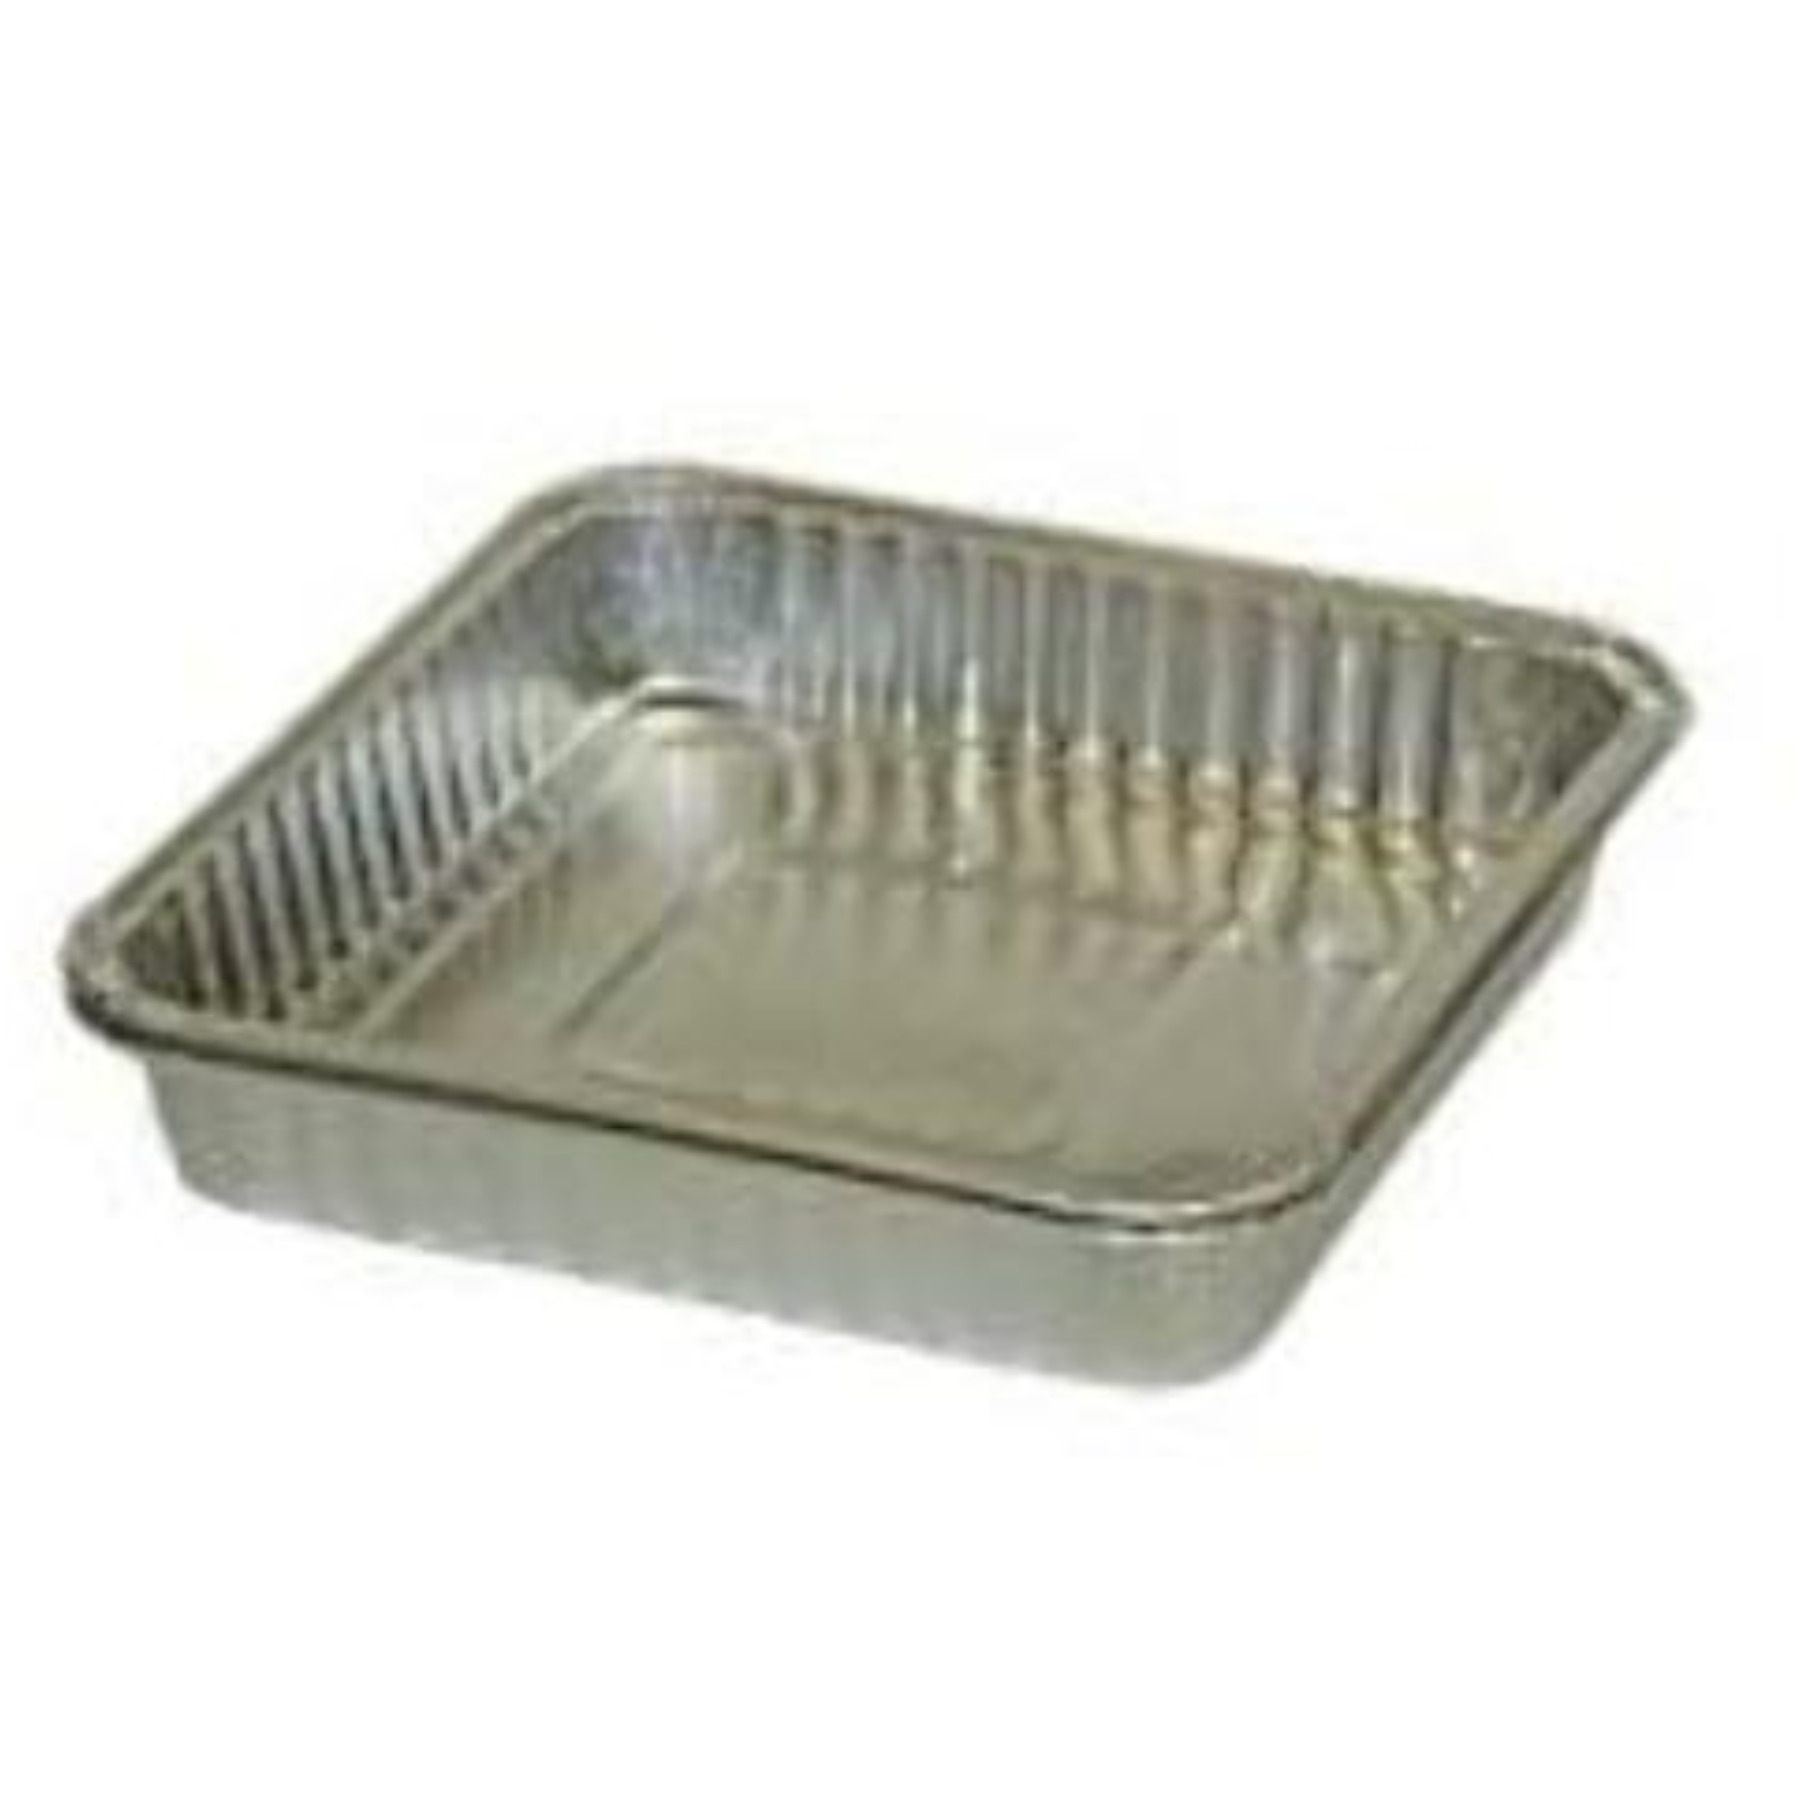 Disposable Square Cake Pan, Package Of 3 Case Pack 12 332012 332012